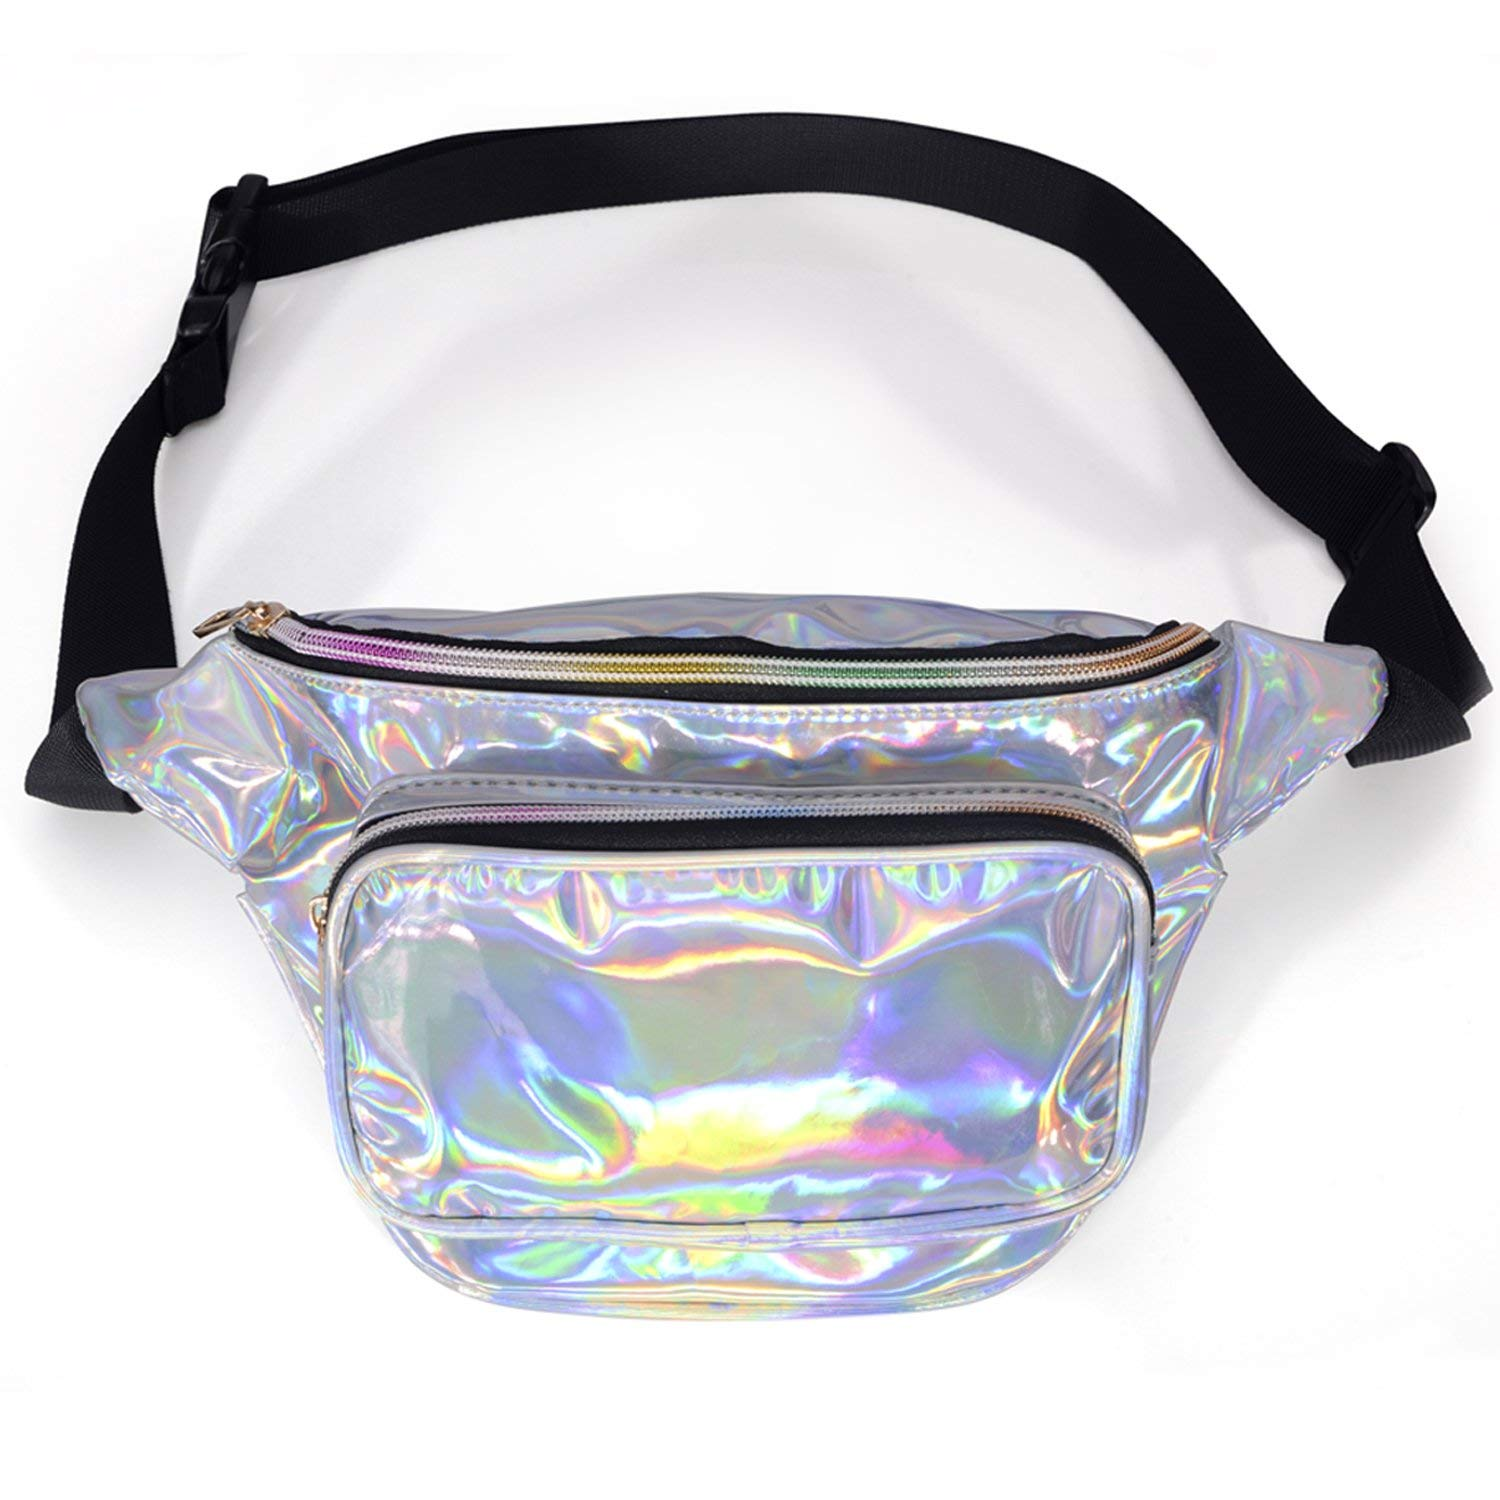 LEADO Cute Neon Fanny Pack Holographic, 80s Metallic Shiny Fanny Packs for Women Kids Fashion, Stylish Waist Bum Bag for Festival, Rave, Travel